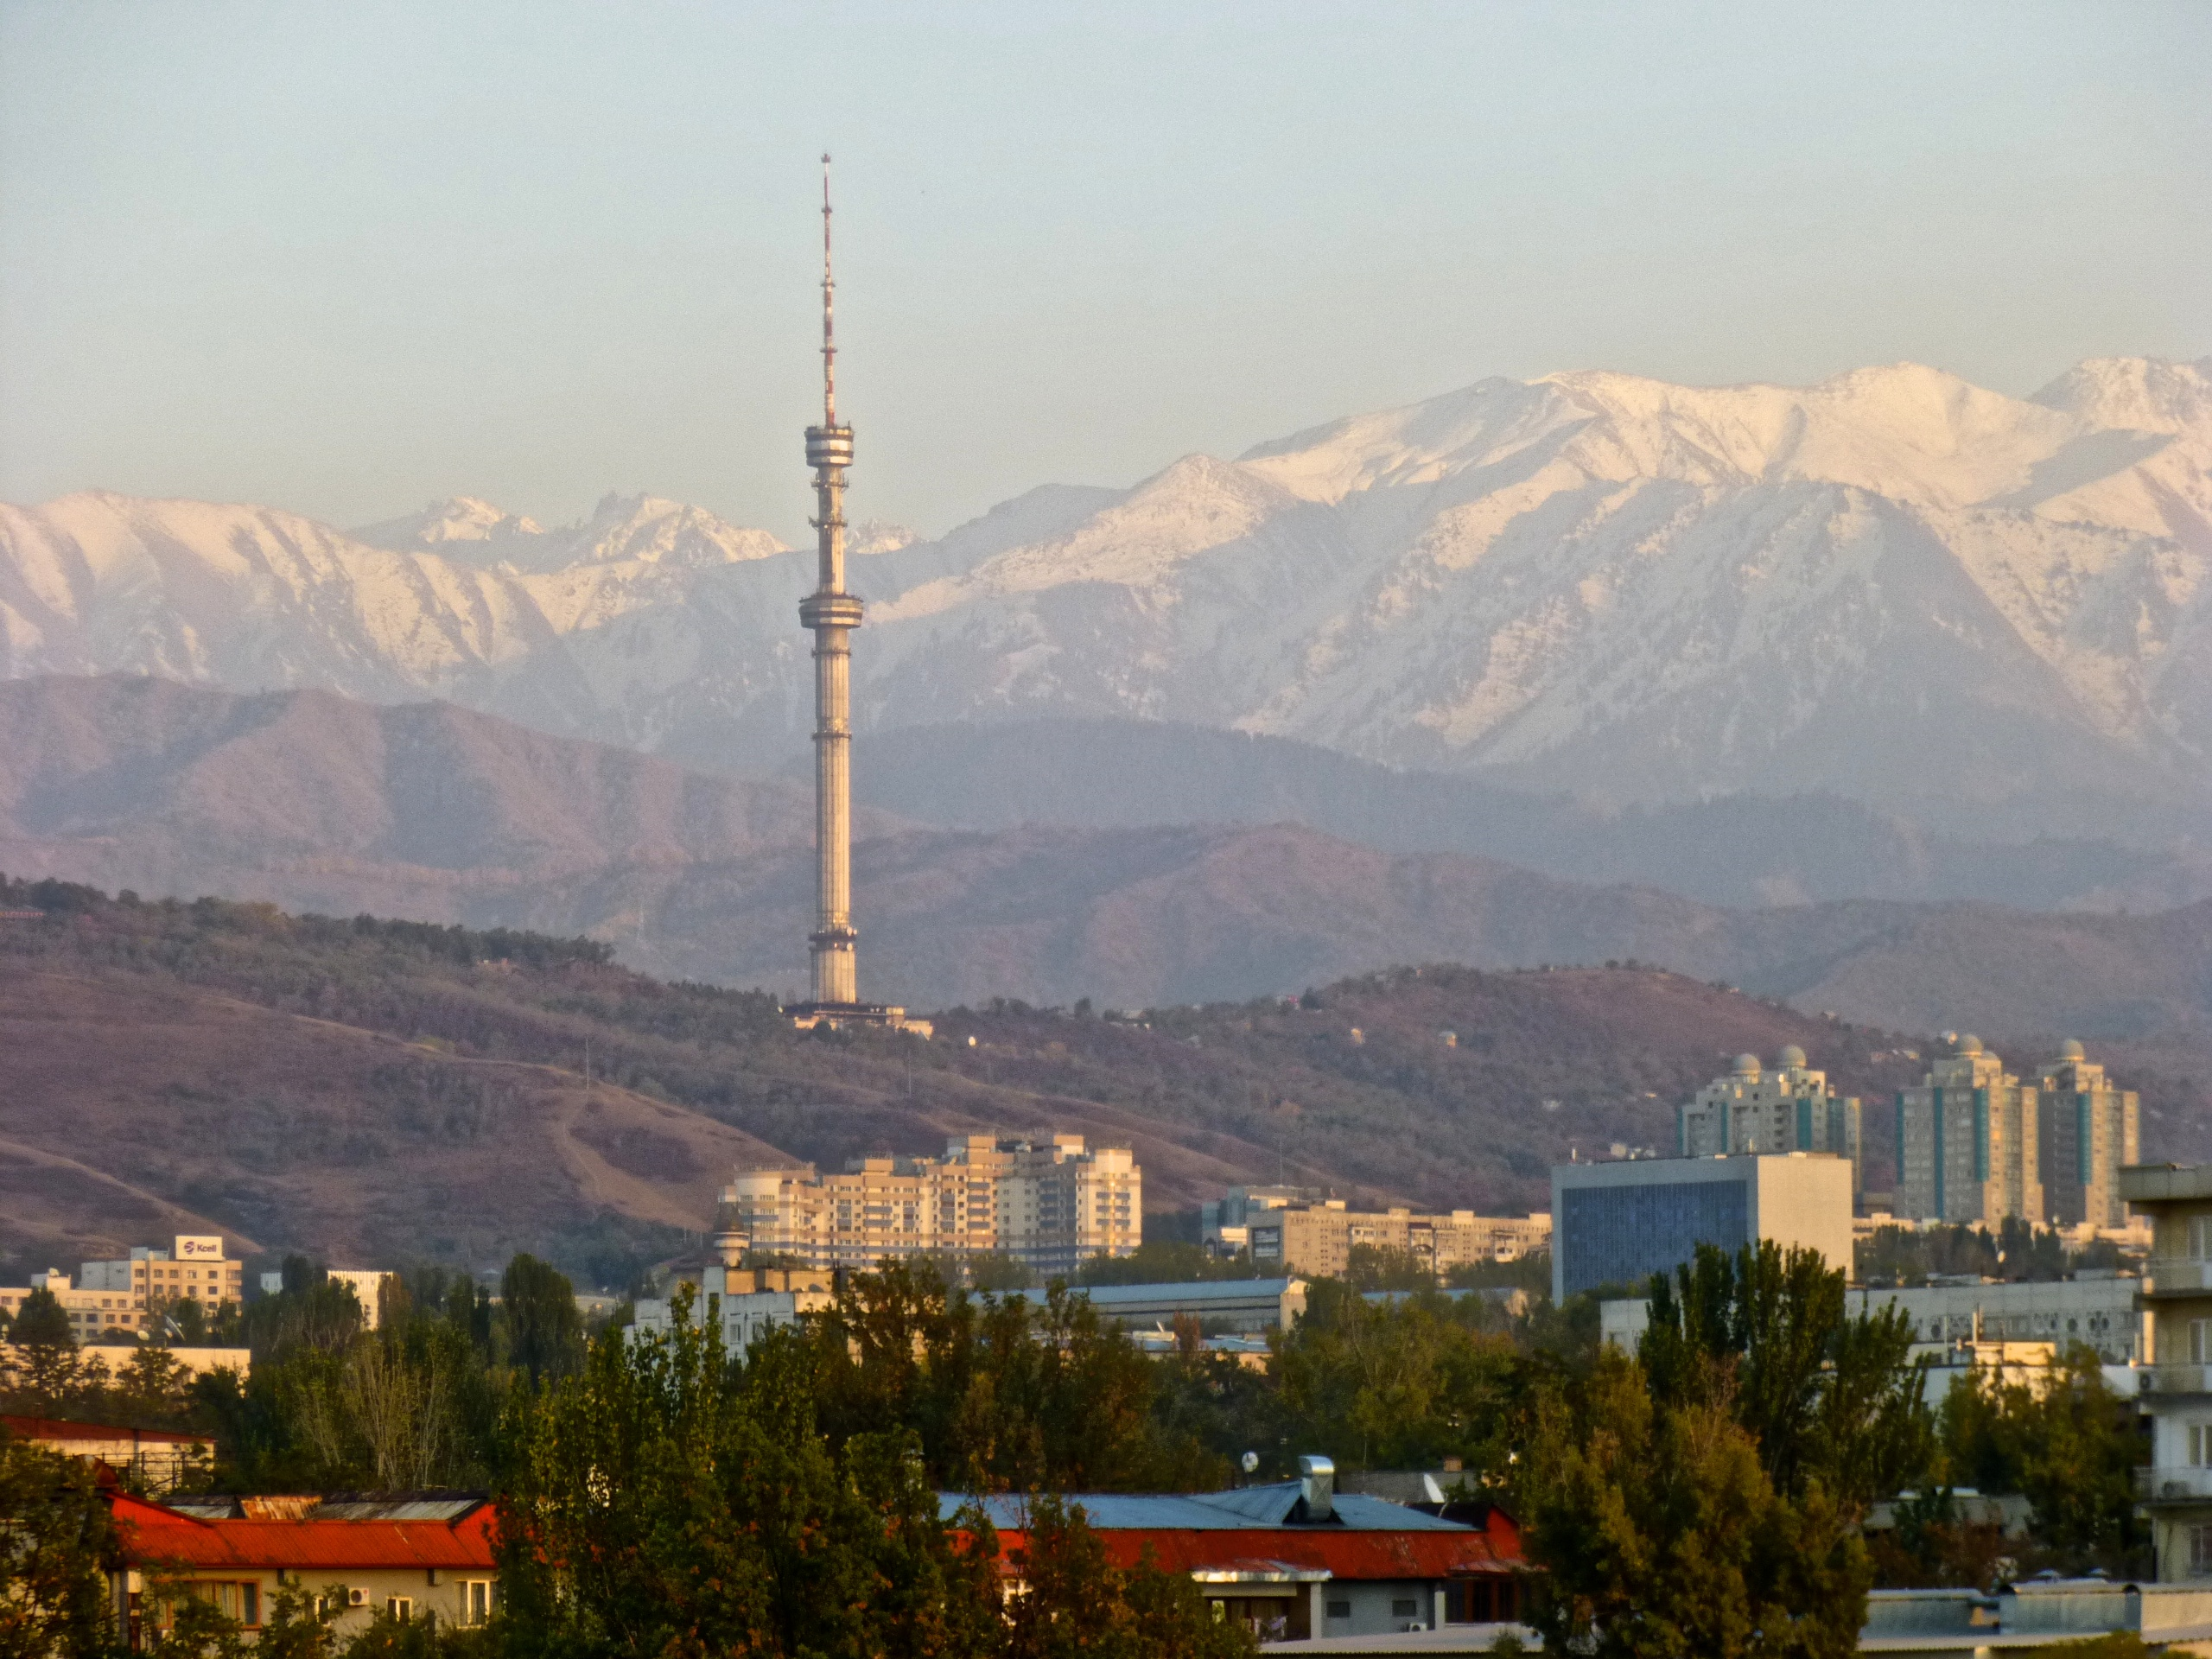 kazakhstan - photo #17